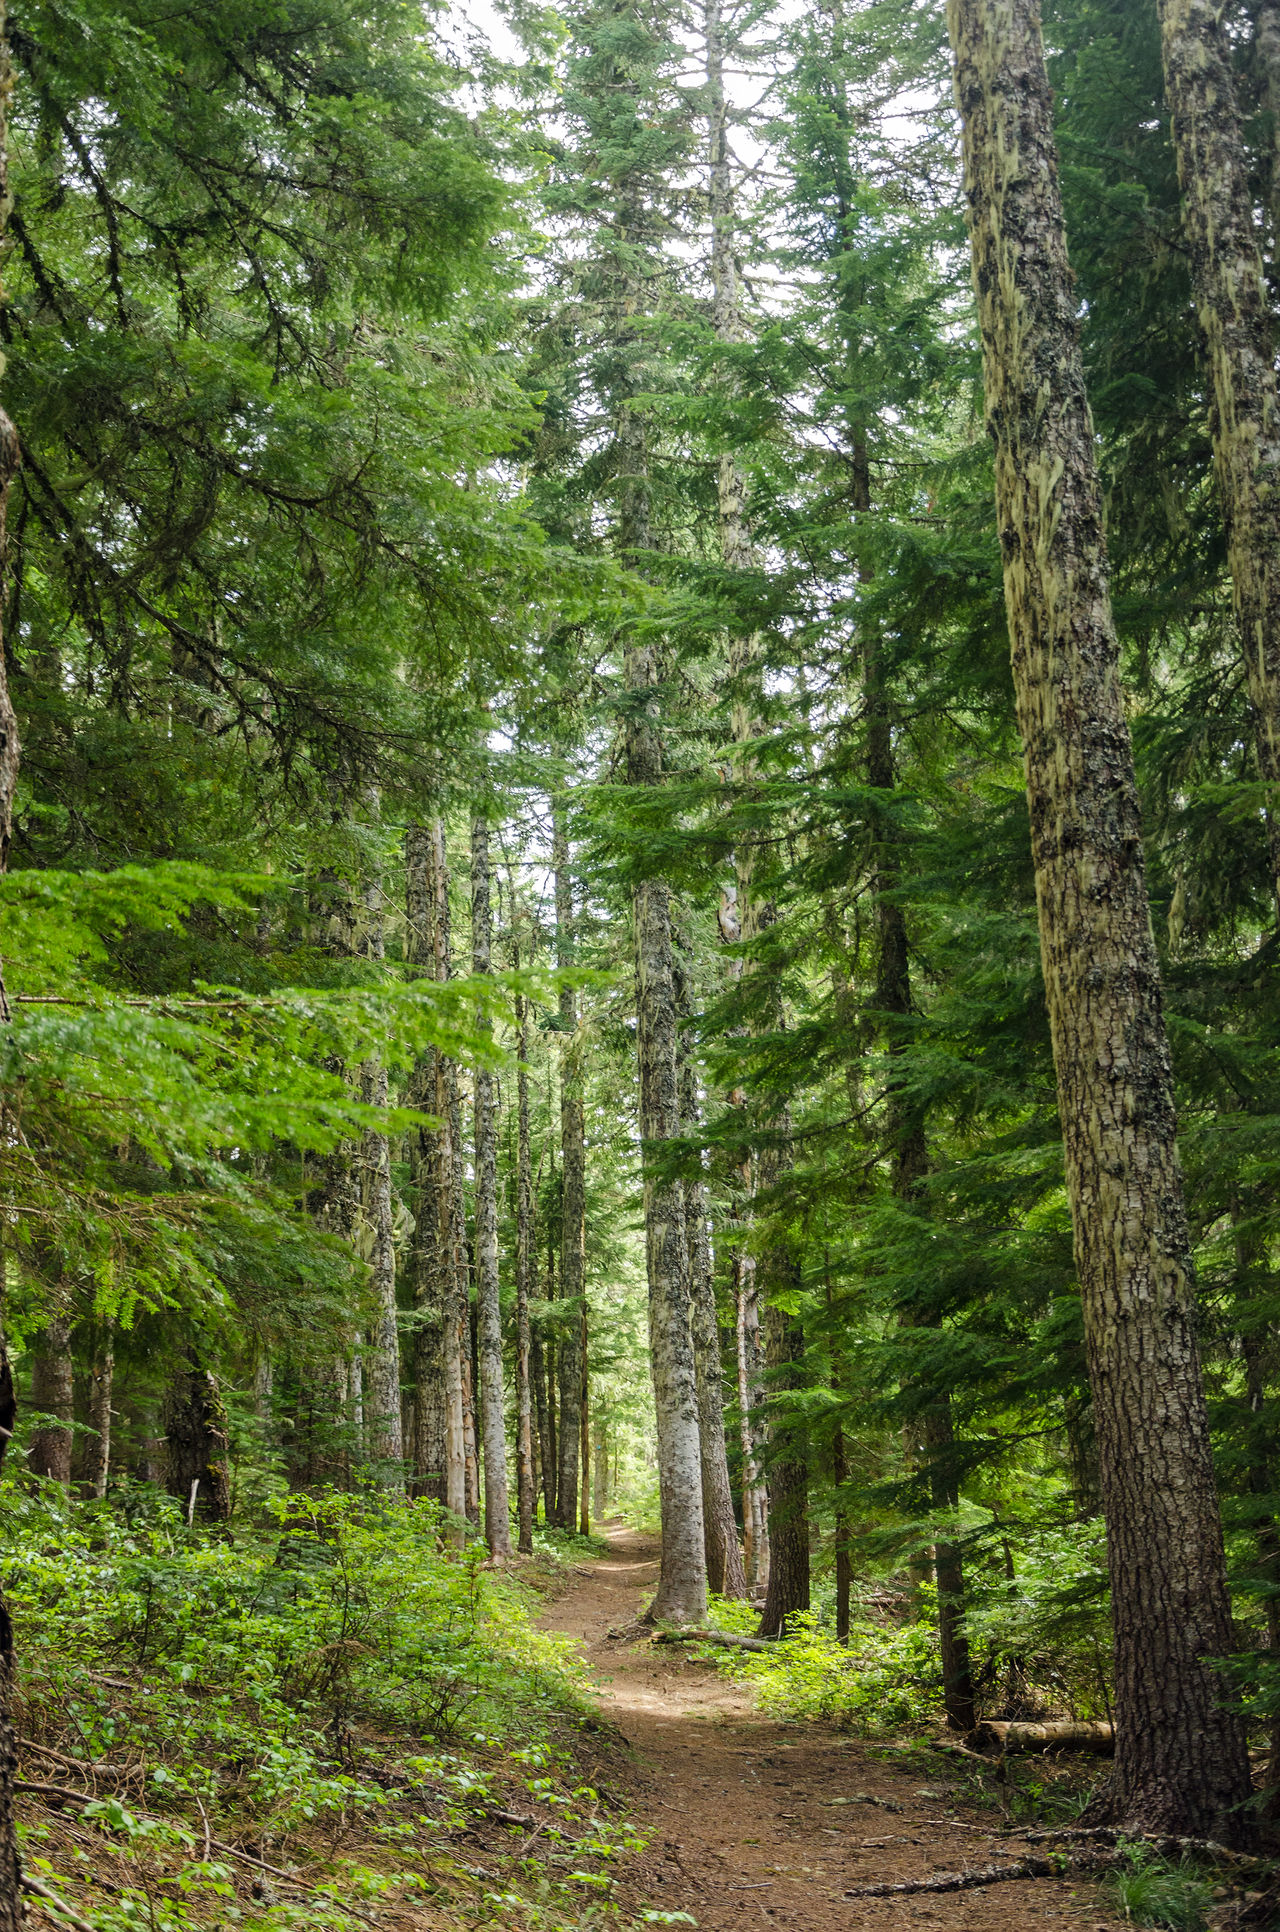 Trail passing through tall pine trees in Oregon Background Branch Branches Brown Conifer  Coniferous Detail Evergreen Fir Forest Fresh Green Leaf Natural Nature Nature Needle Needles Oregon Pine Plant Season  Spruce Tree Wood